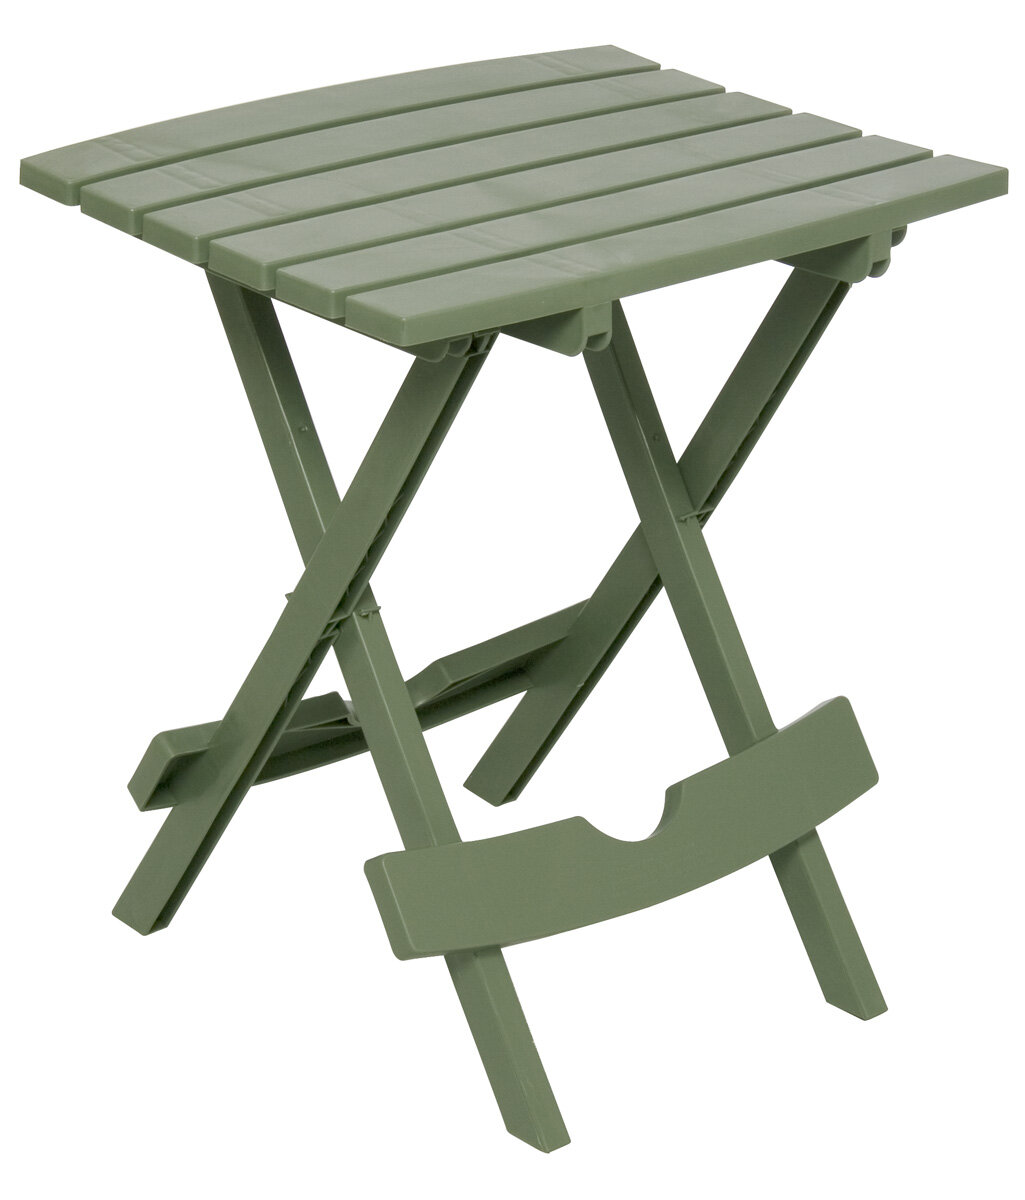 Adams Stand Quik Fold Side Table White Patio Chair